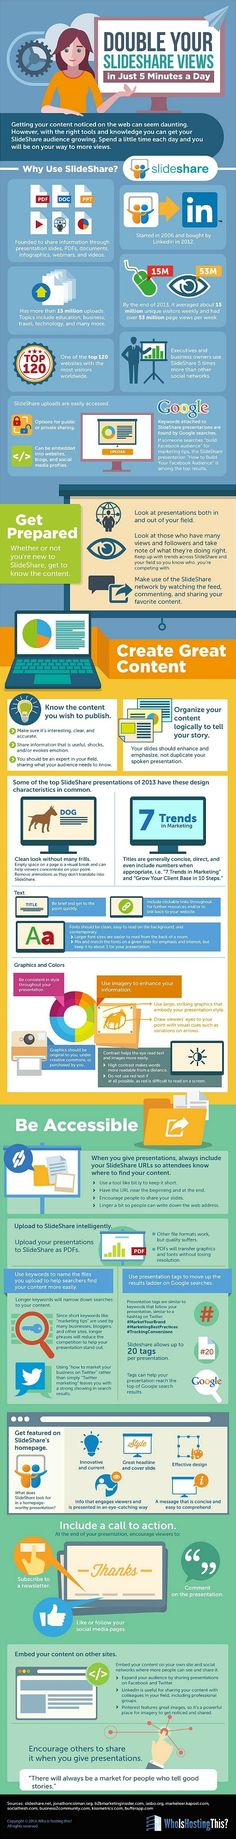 Double your Slideshare views in just 5 minutes a day #infographic